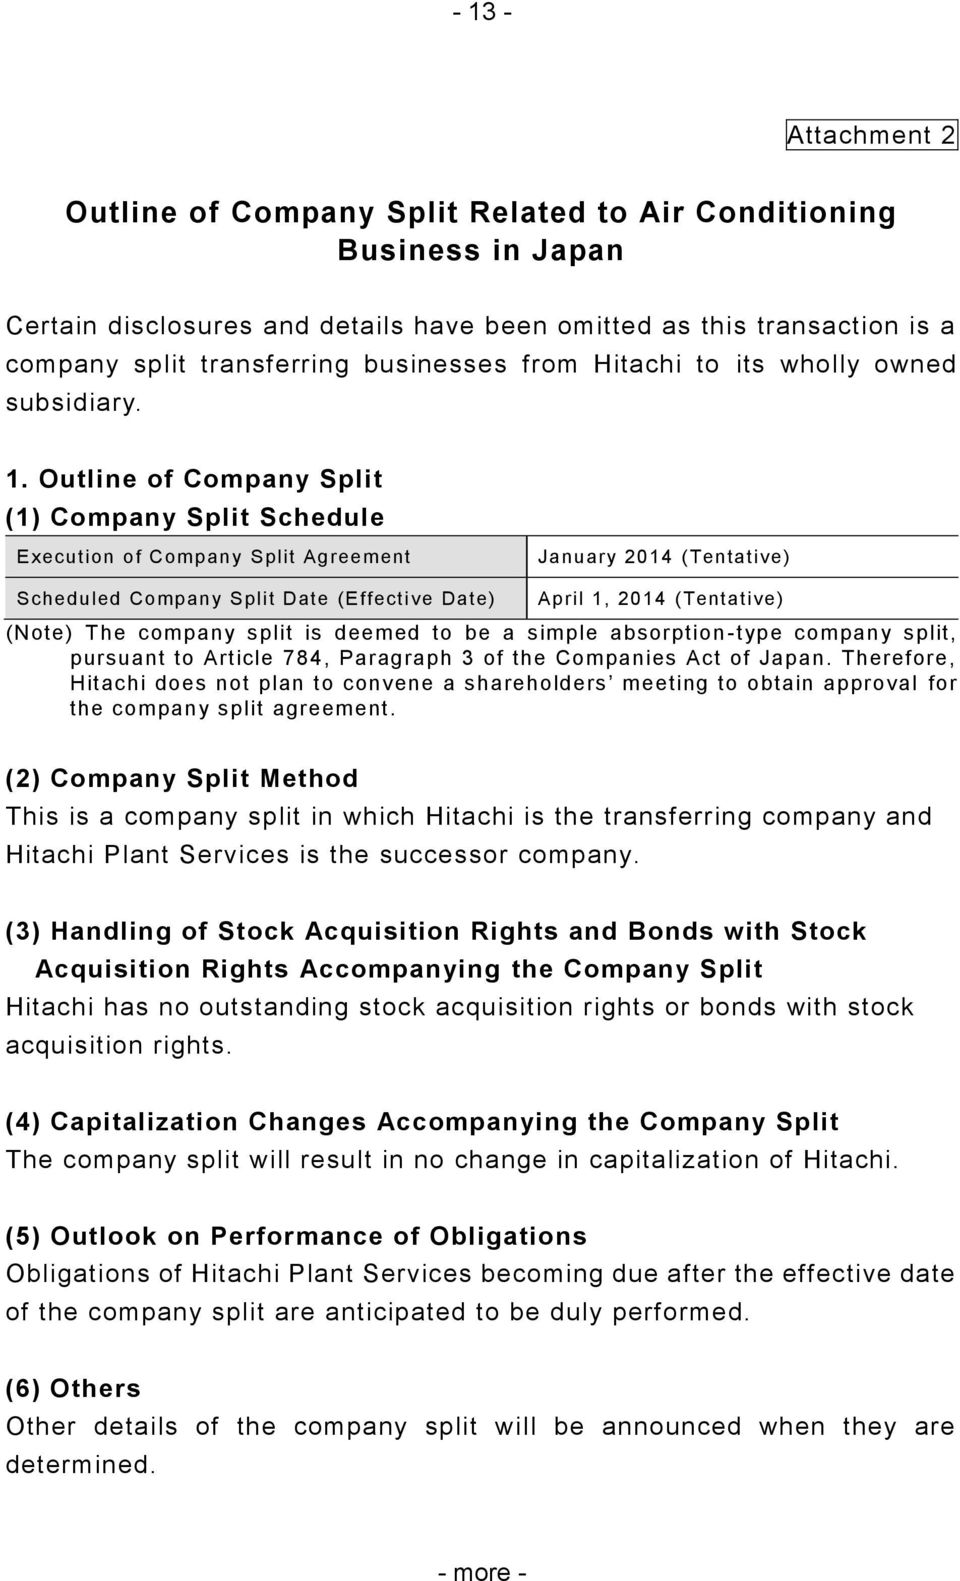 Outline of Company Split (1) Company Split Schedule Execution of Company Split Agreement January 2014 (Tentative) Scheduled Company Split Date (Effective Date) April 1, 2014 (Tentative) (Note) The